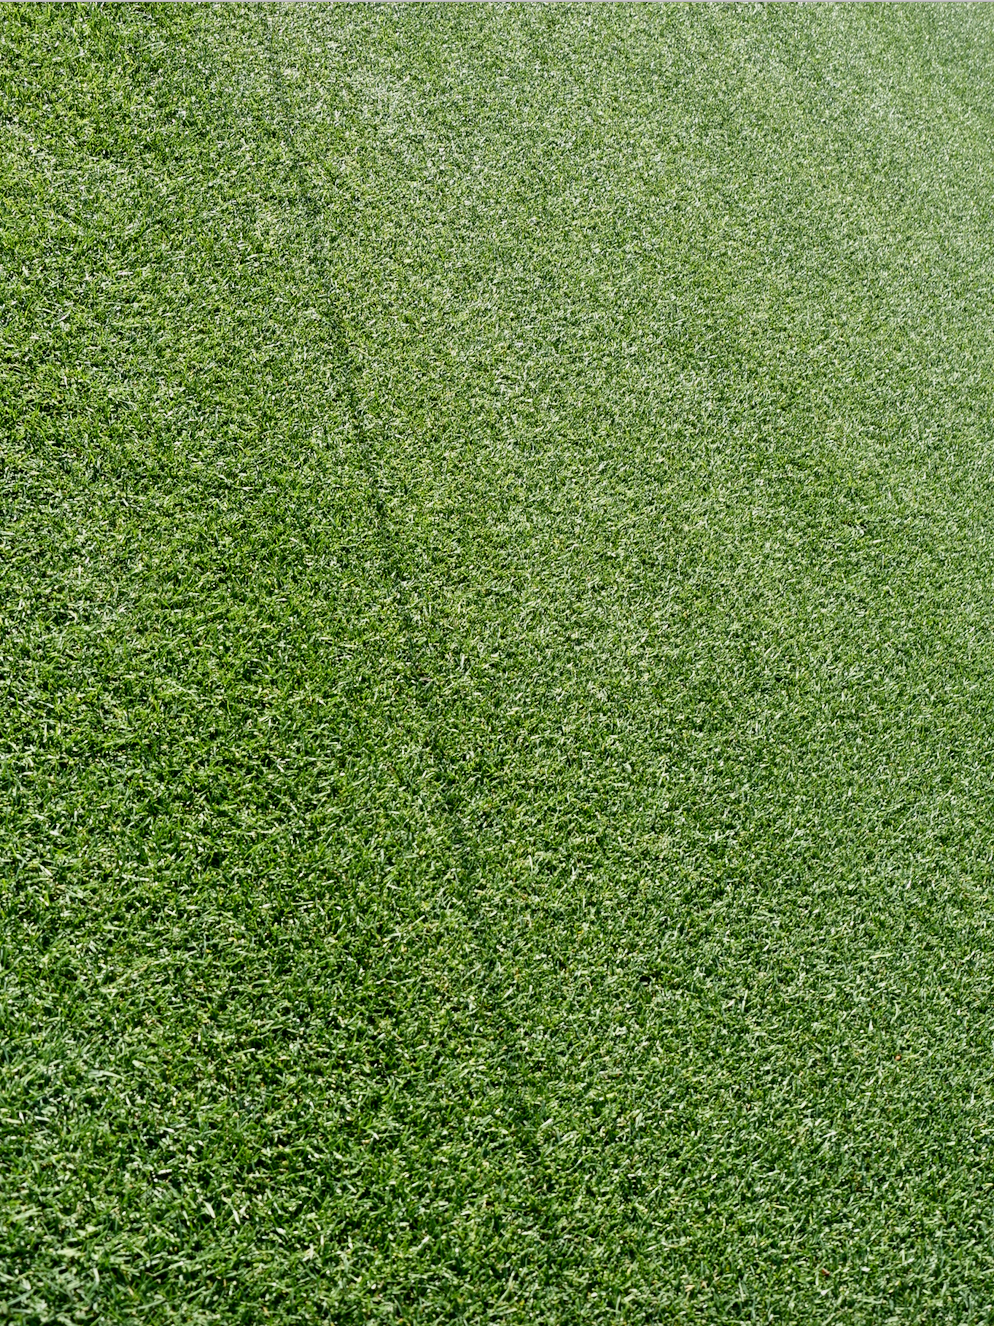 My biggest surprise was how the fairway grass looks and feels like artificial turf - so green and dense like nothing I have seen before. Perhaps that is because there are never any golf carts on the course, very limited play and heavy use of herbicides and pesticides.The rough is on the left side.